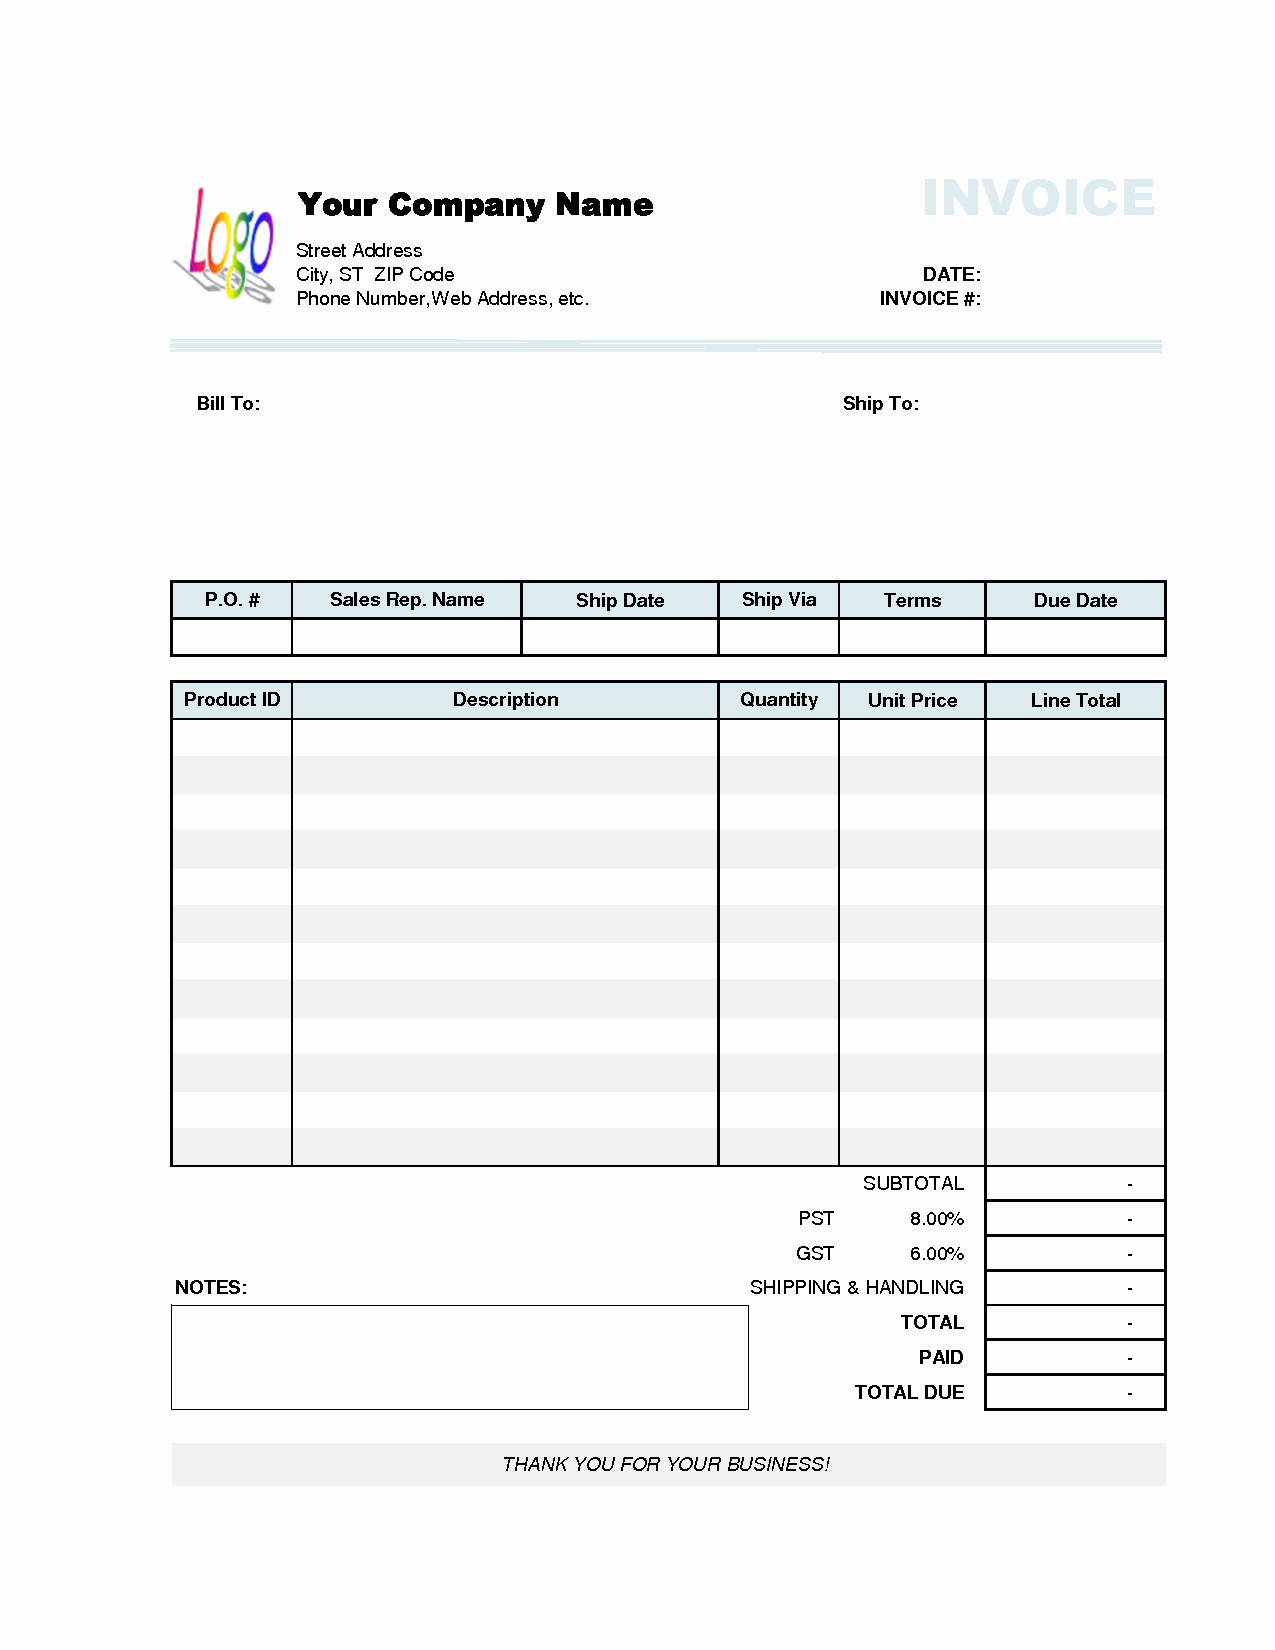 invoice template excel 2010 1679